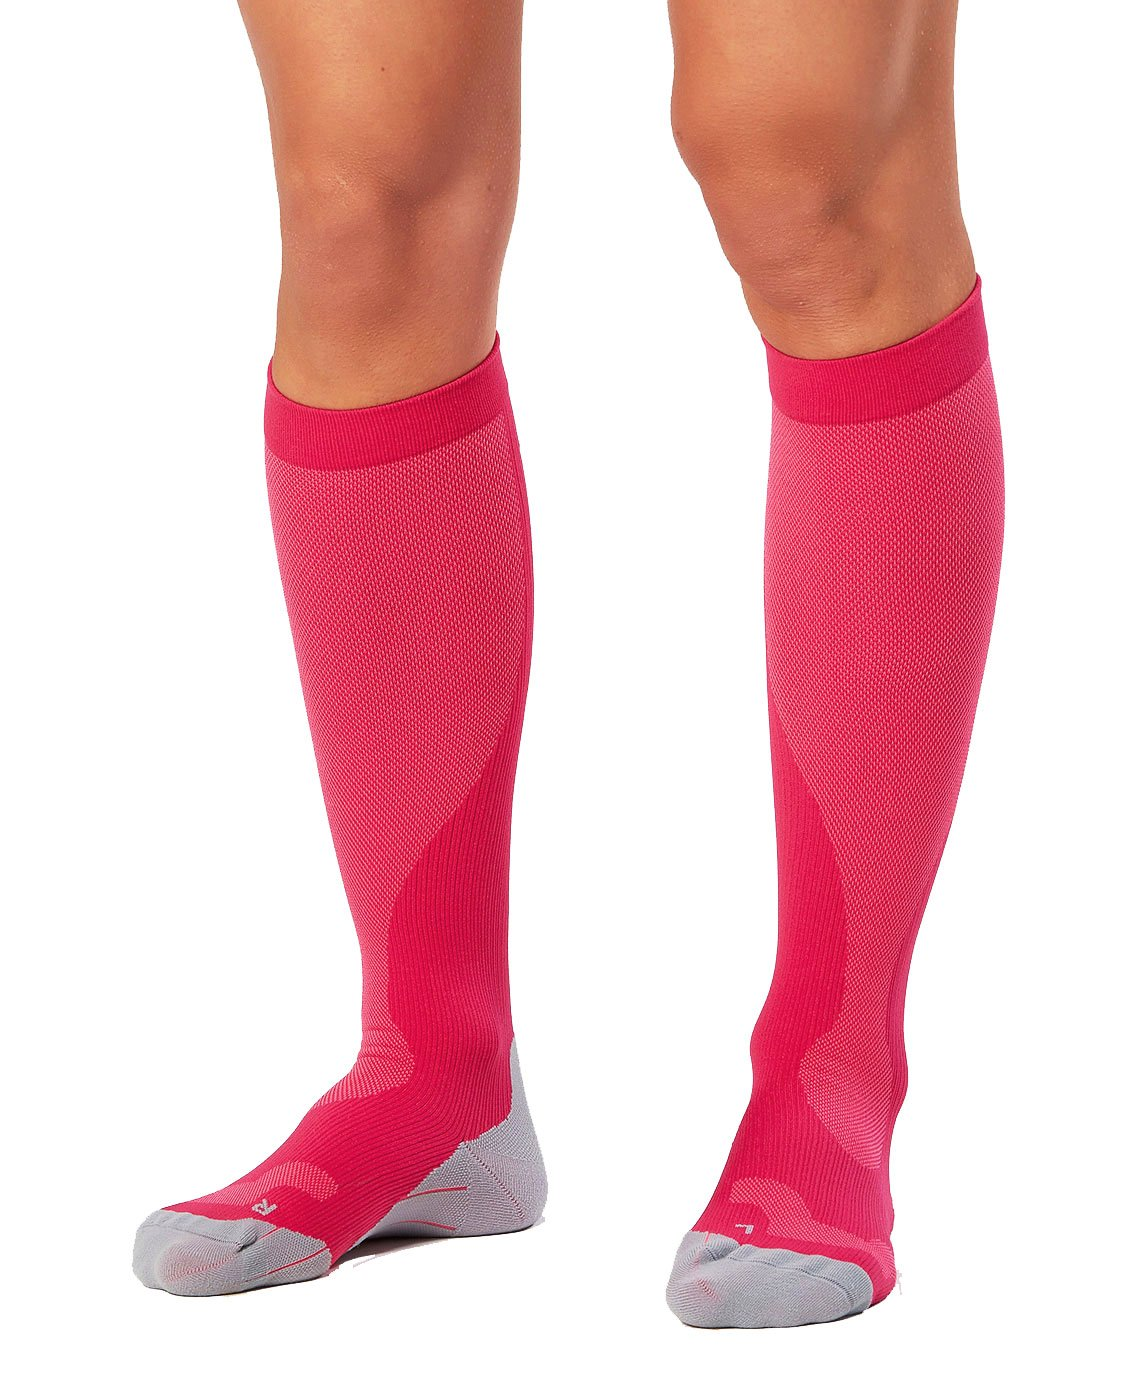 2XU Women's Performance Compression Run Sock, Hot Pink/Grey, X-Small by 2XU (Image #1)